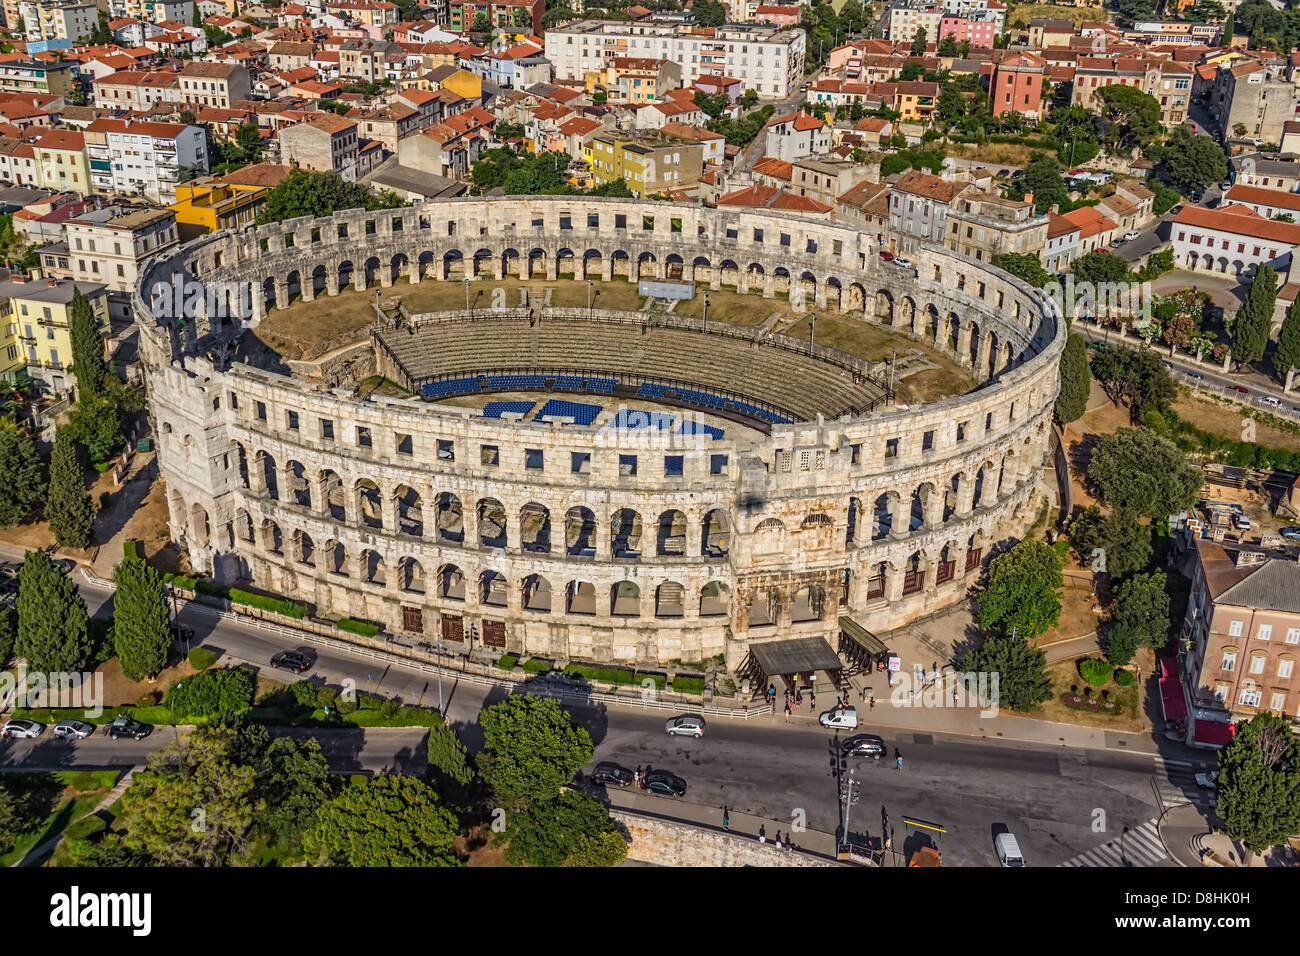 Roman time arena in Pula, detail, Croatia. UNESCO world heritage site. - Stock Image